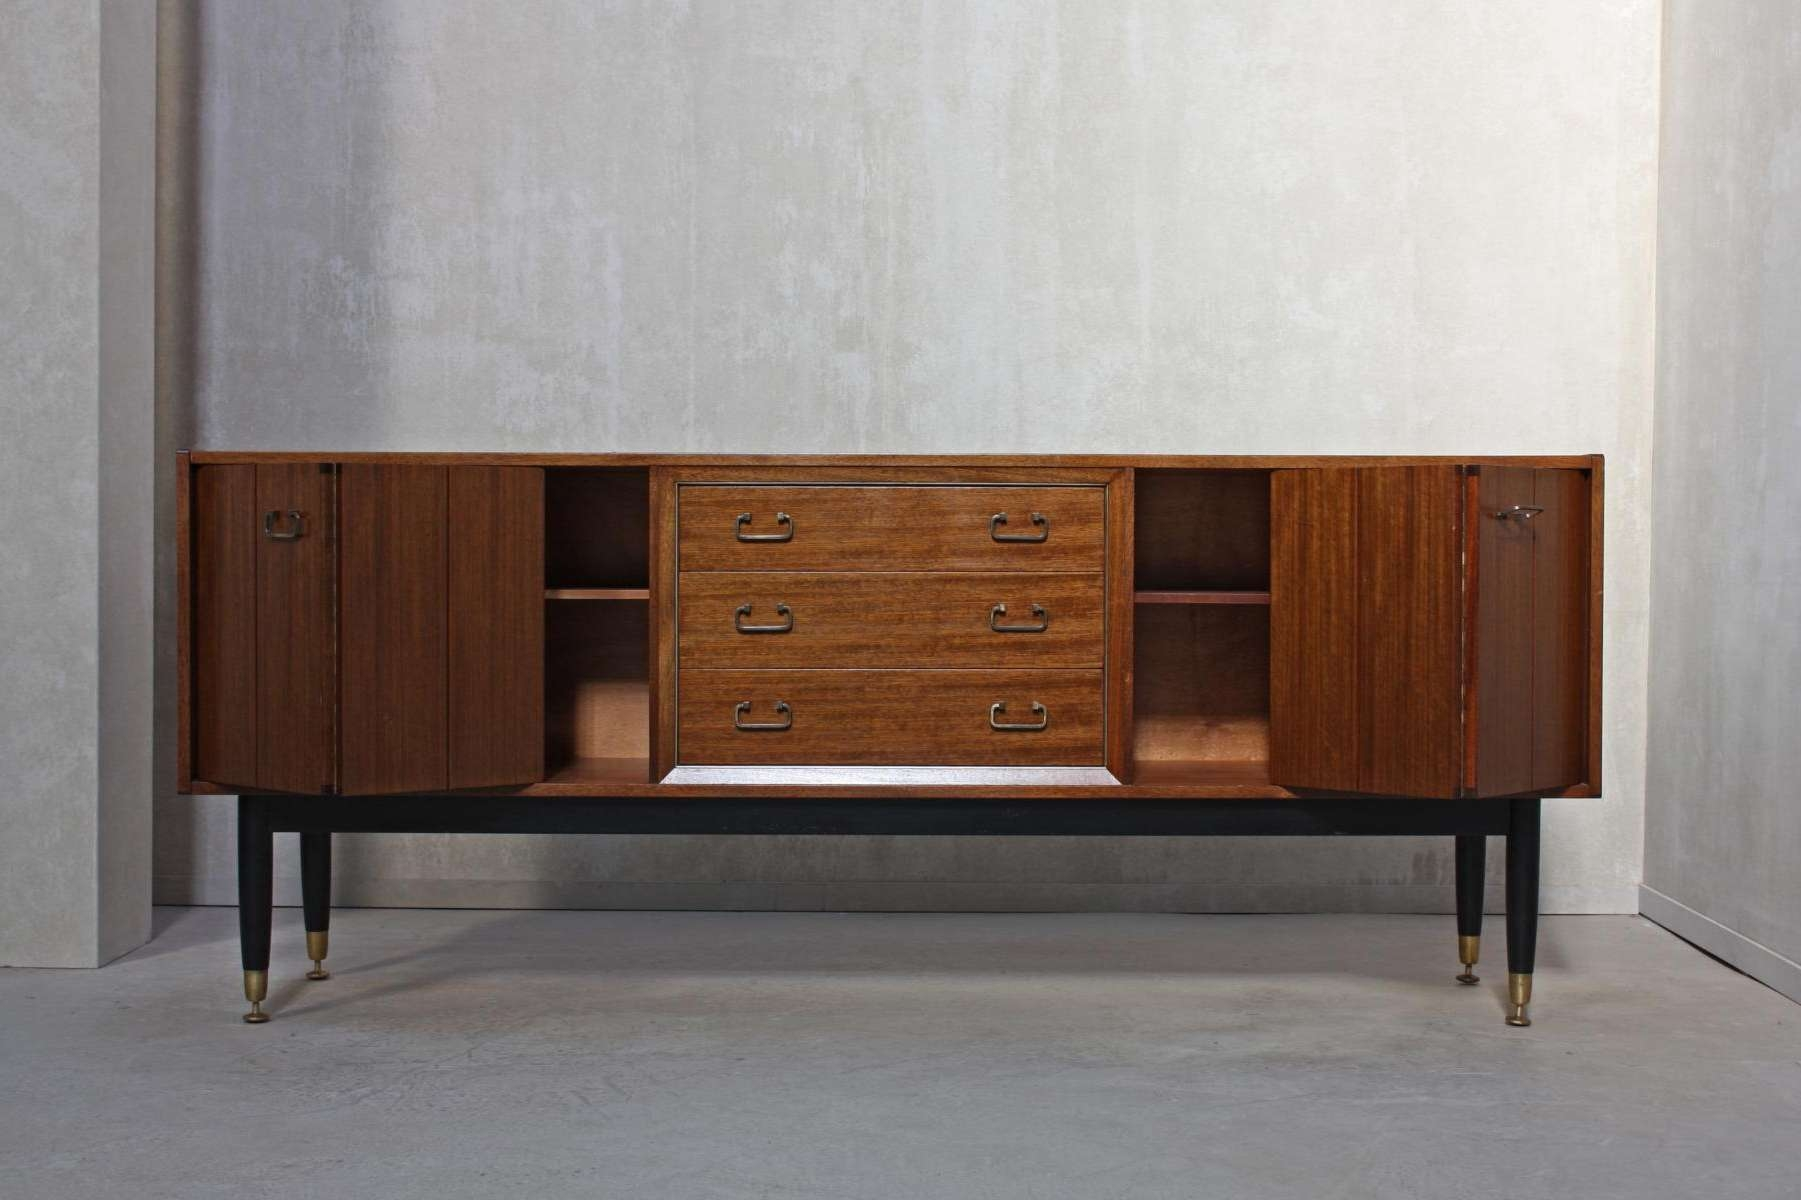 Vintage Sideboard From G Plan, 1950S For Sale At Pamono With Regard To G Plan Vintage Sideboards (View 14 of 20)